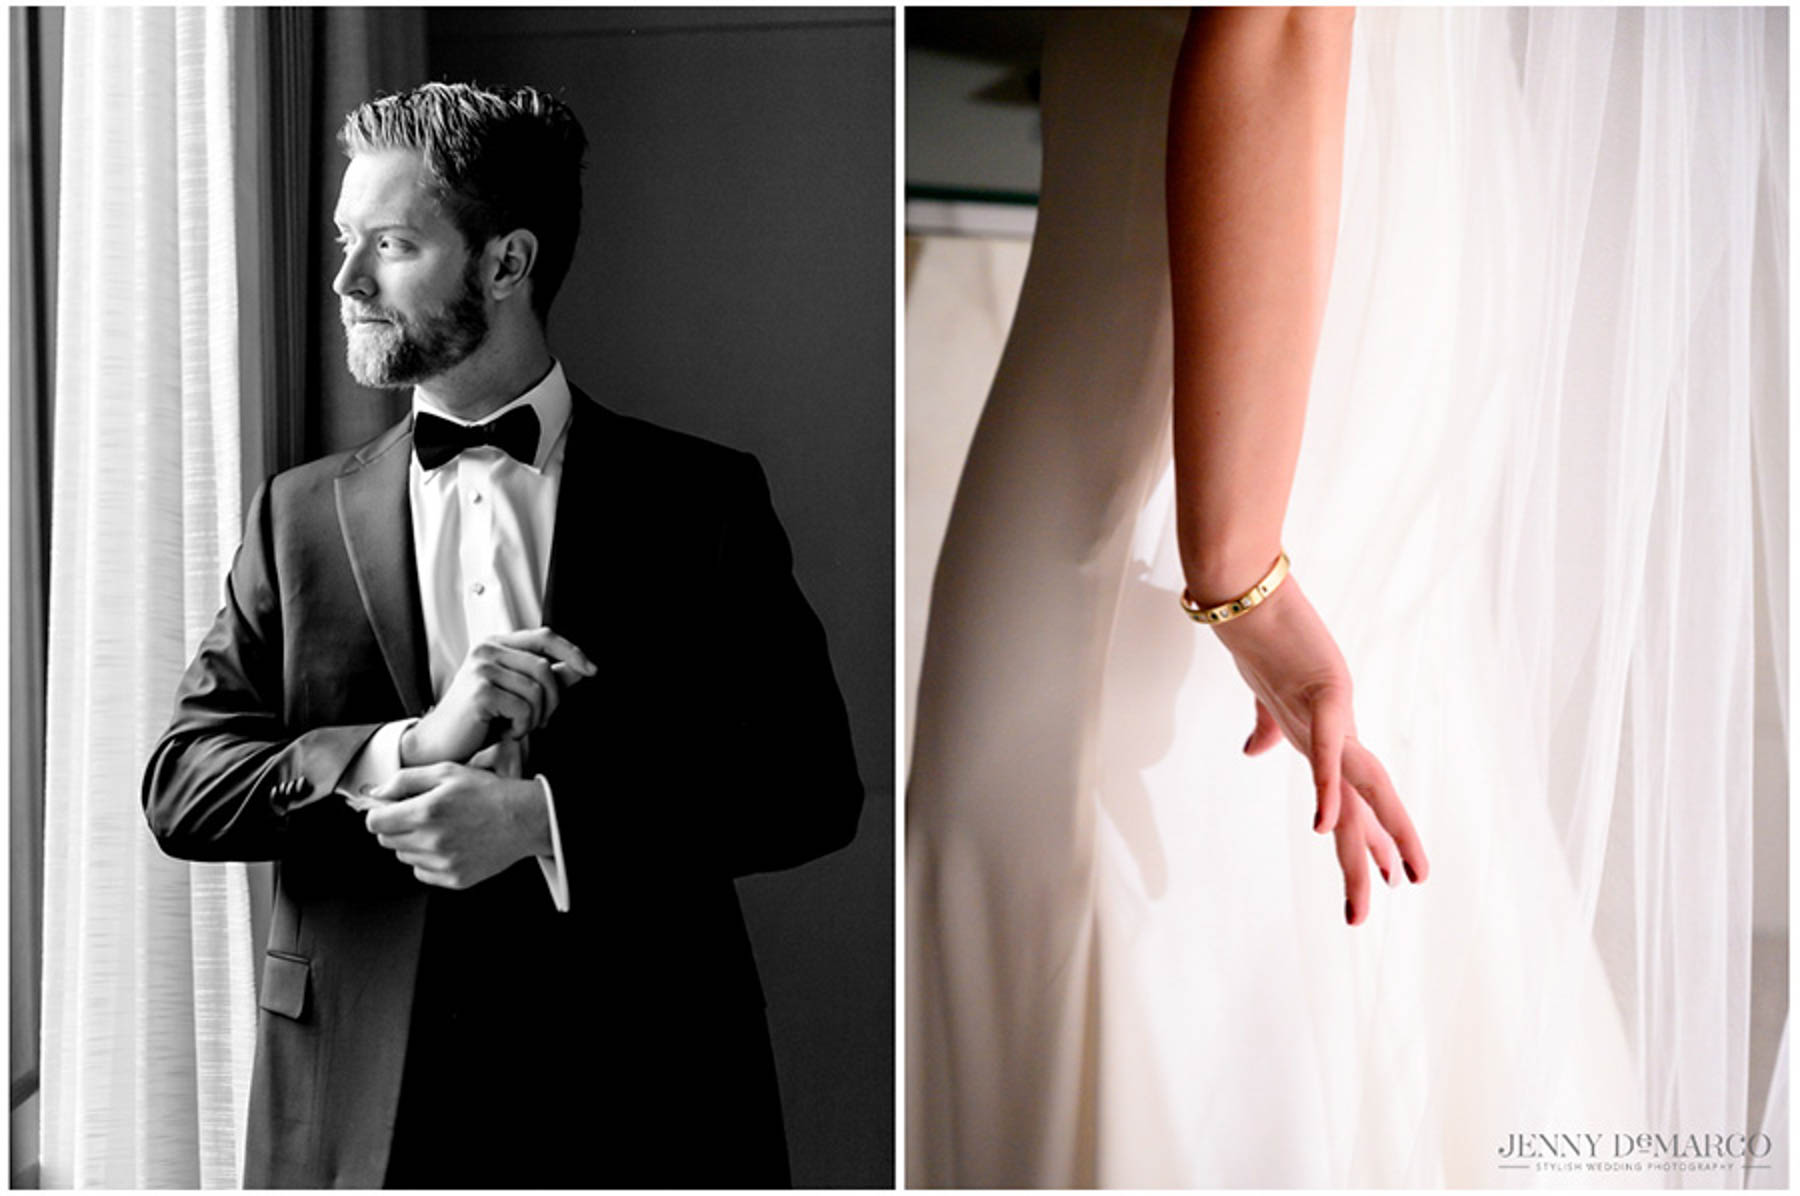 groom cuffs his sleeves and bride's hand as she puts on her dress.